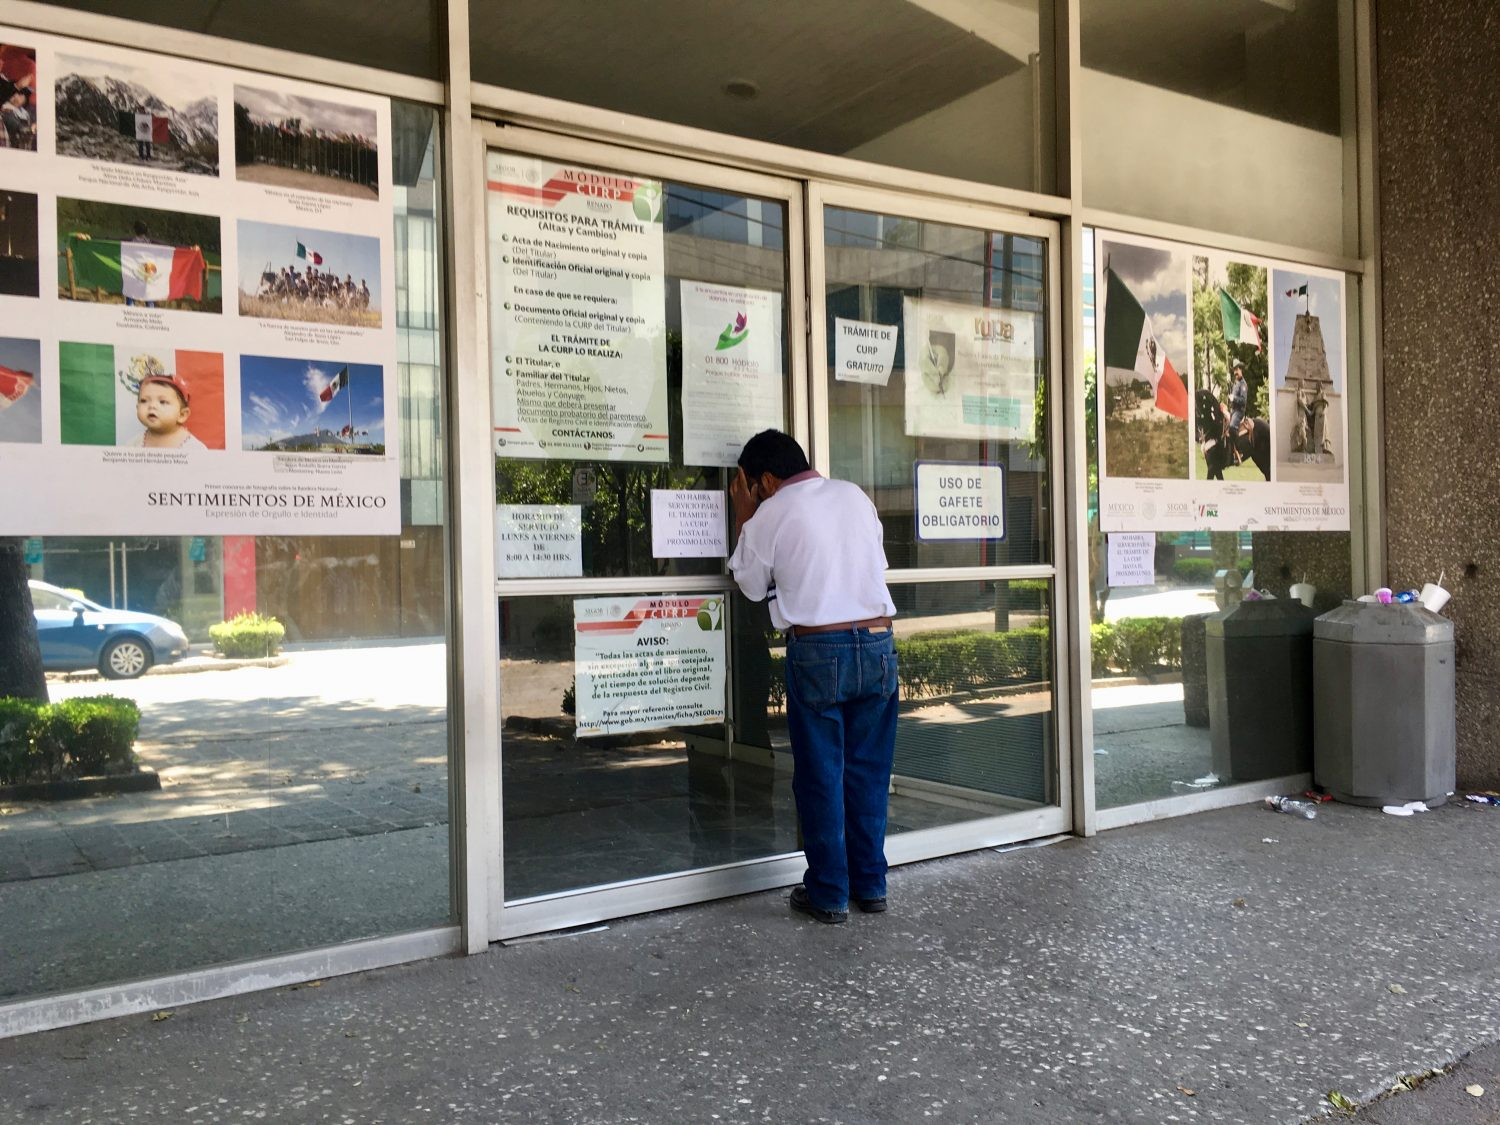 A man stares into the window of the Mexico City building that houses Mexico's Commission for the Aid of Refugees (COMAR). Photo by Hannah Carrese